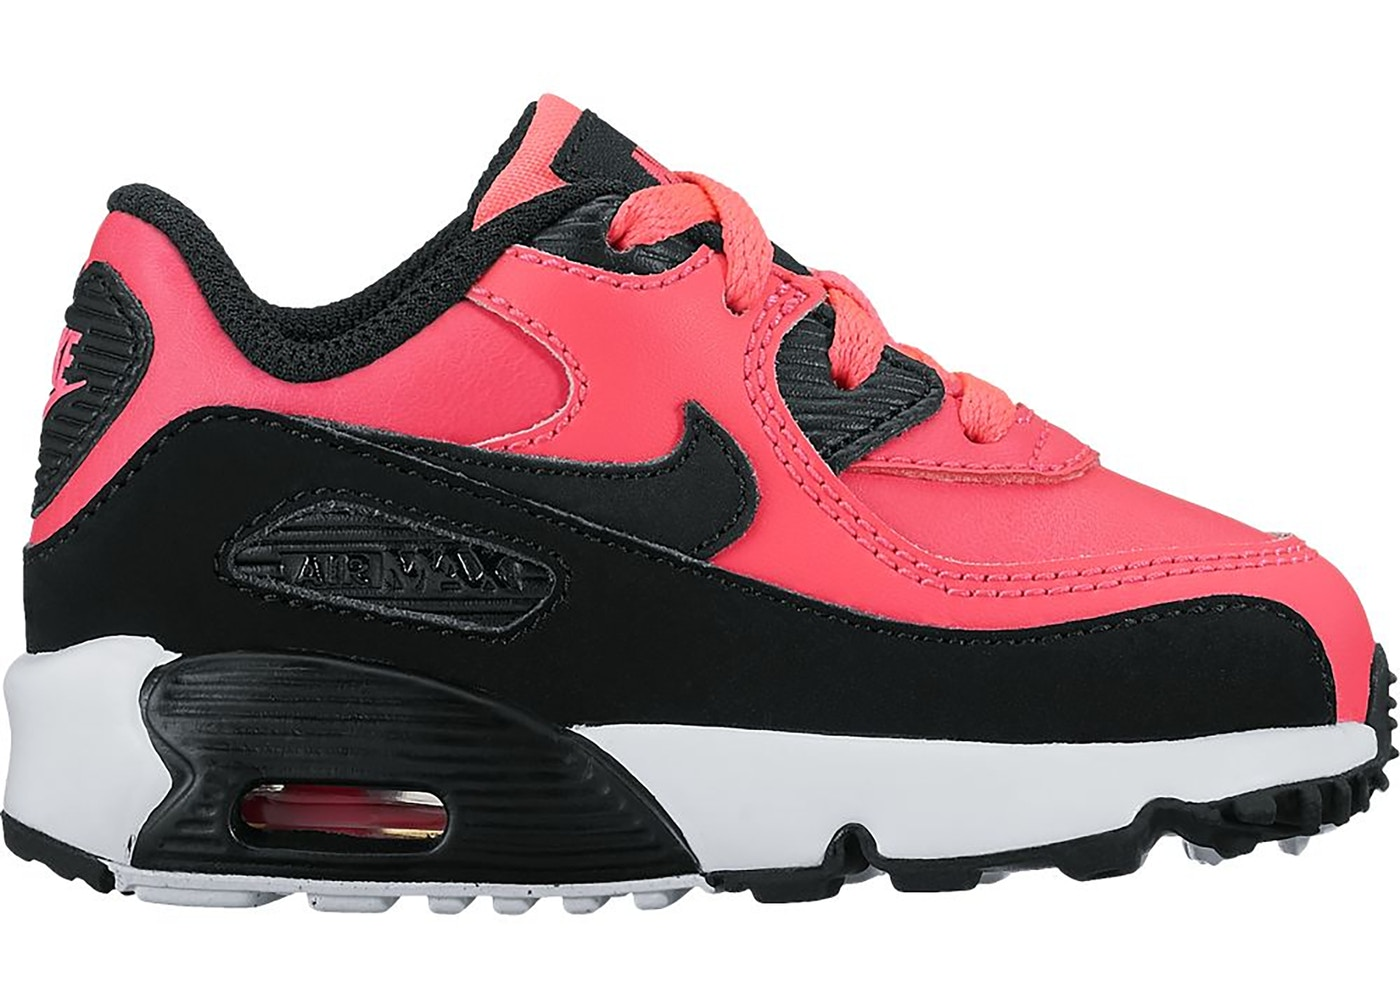 Nike Air Max 90 Leather Racer Pink Black (TD) - 843379-600